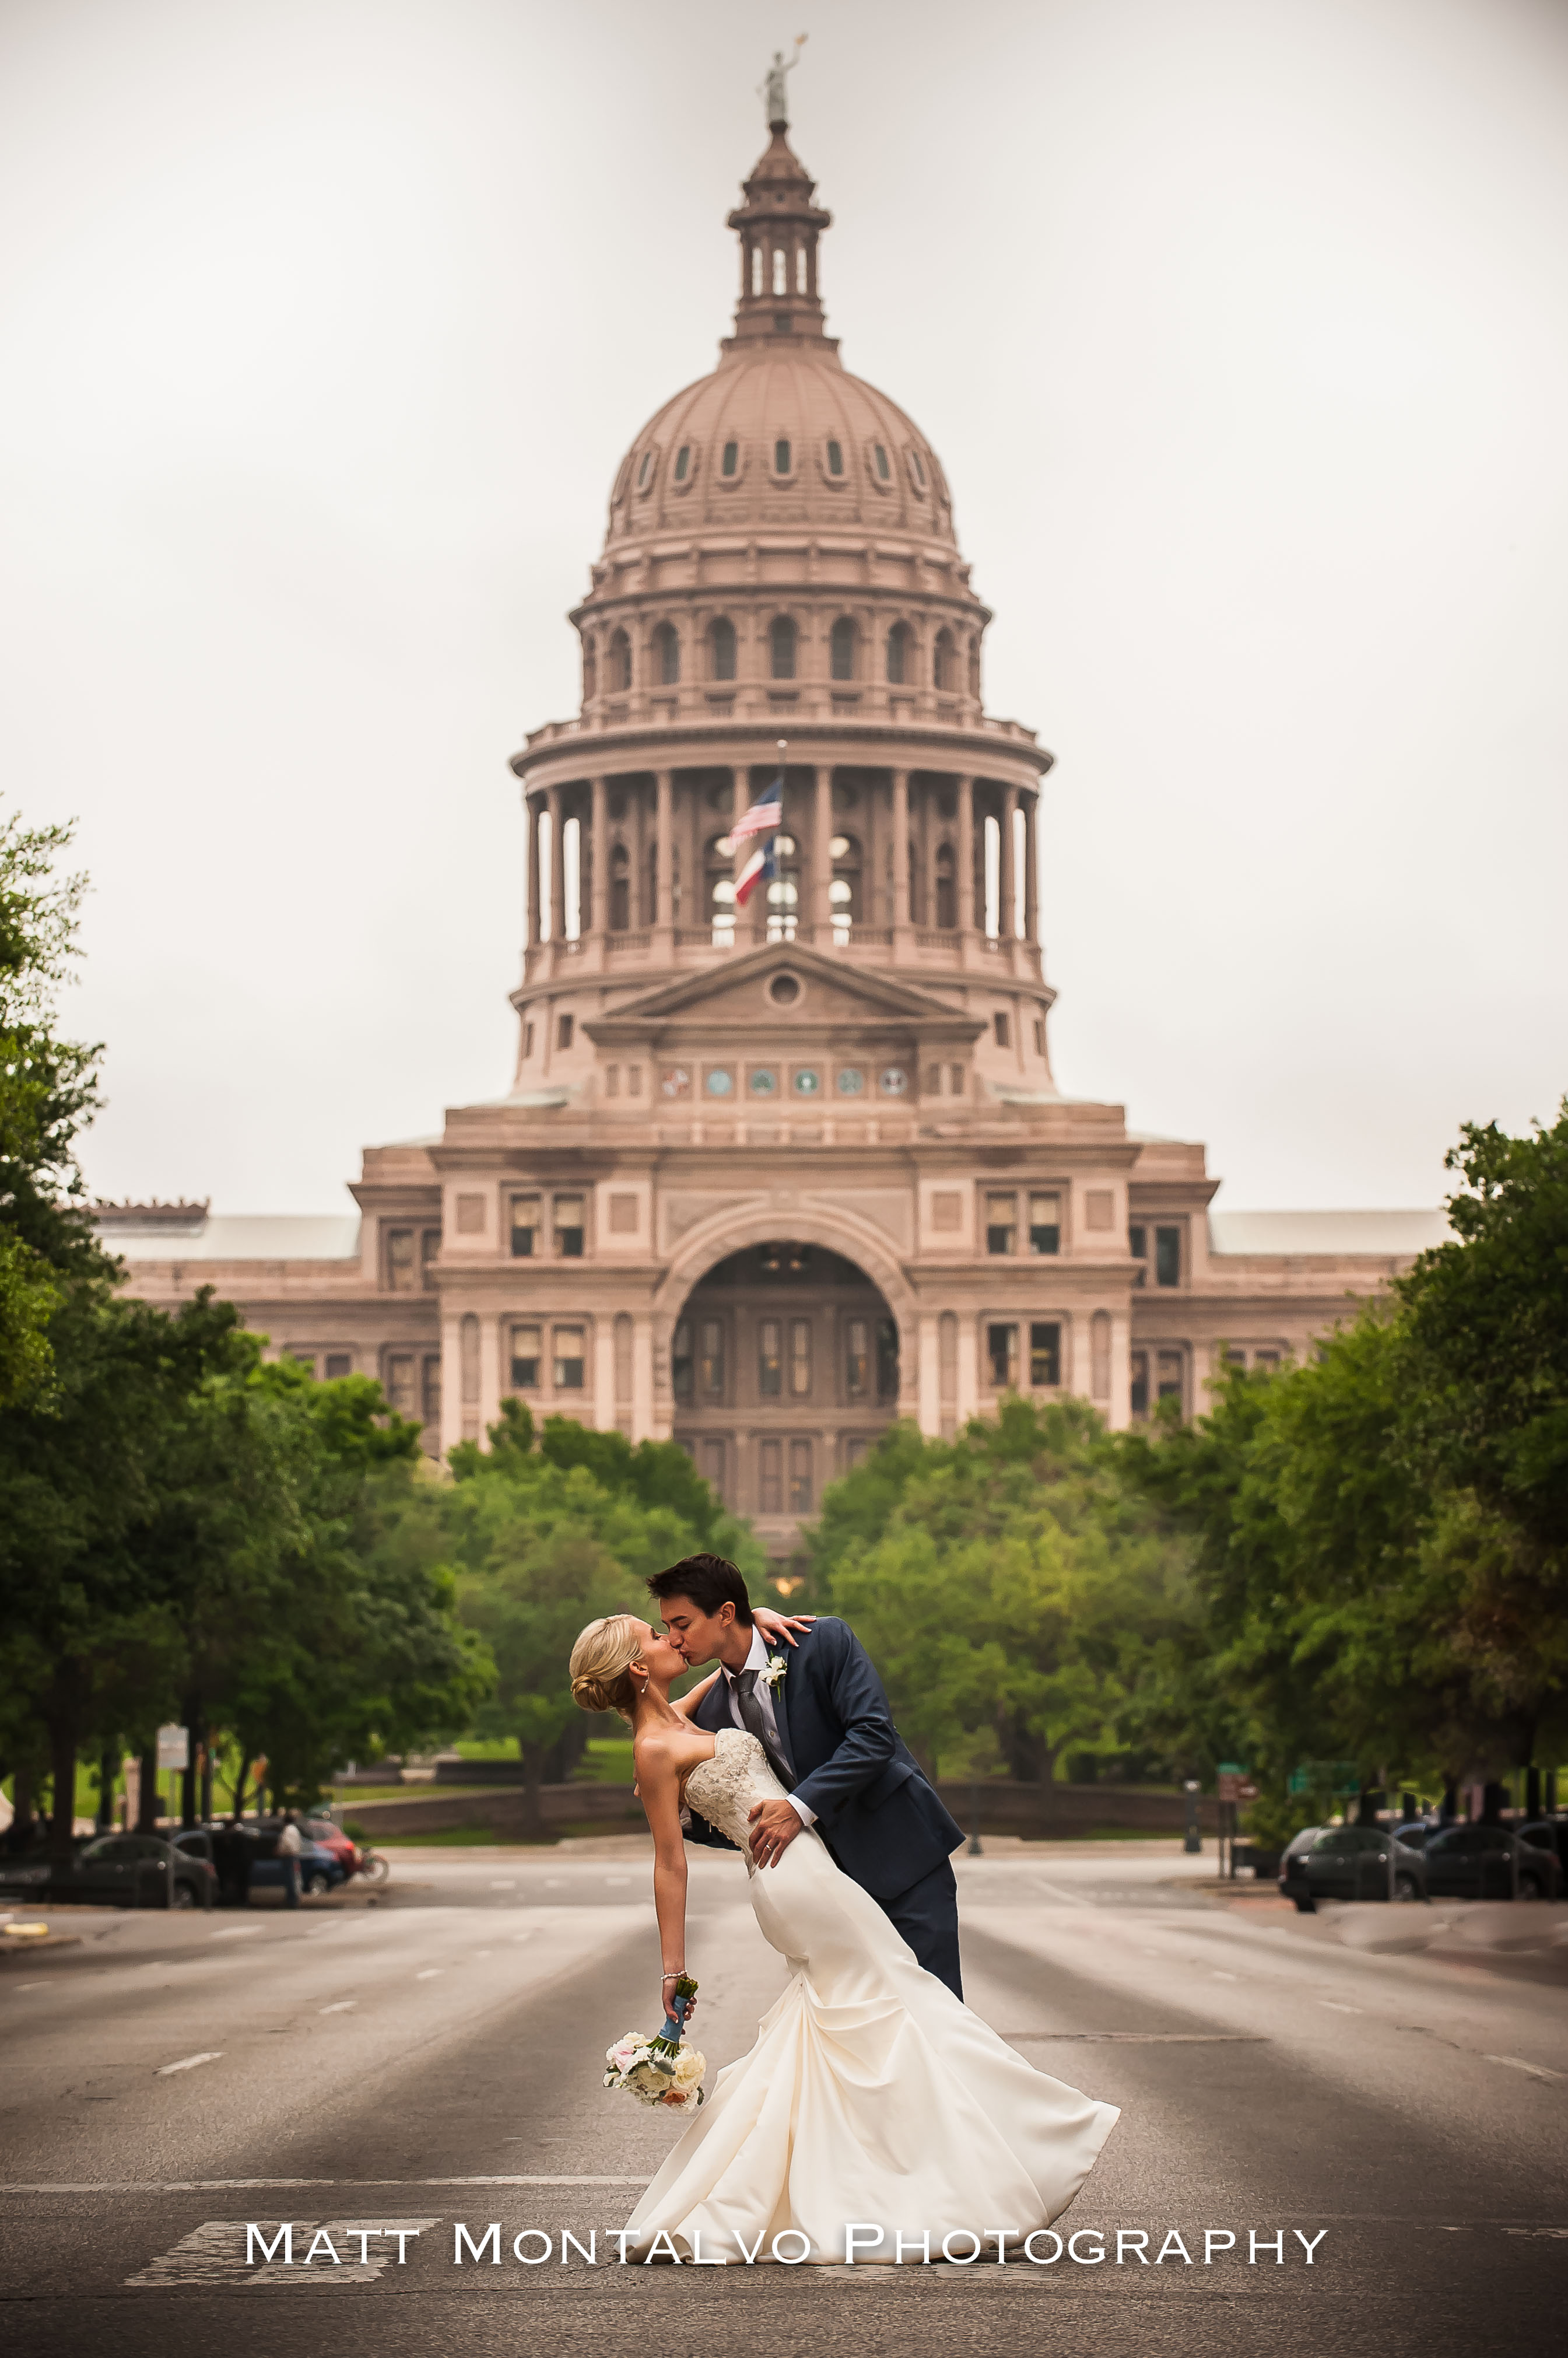 Austin Club Wedding Photography Tx Madison Martin Matt Montalvo